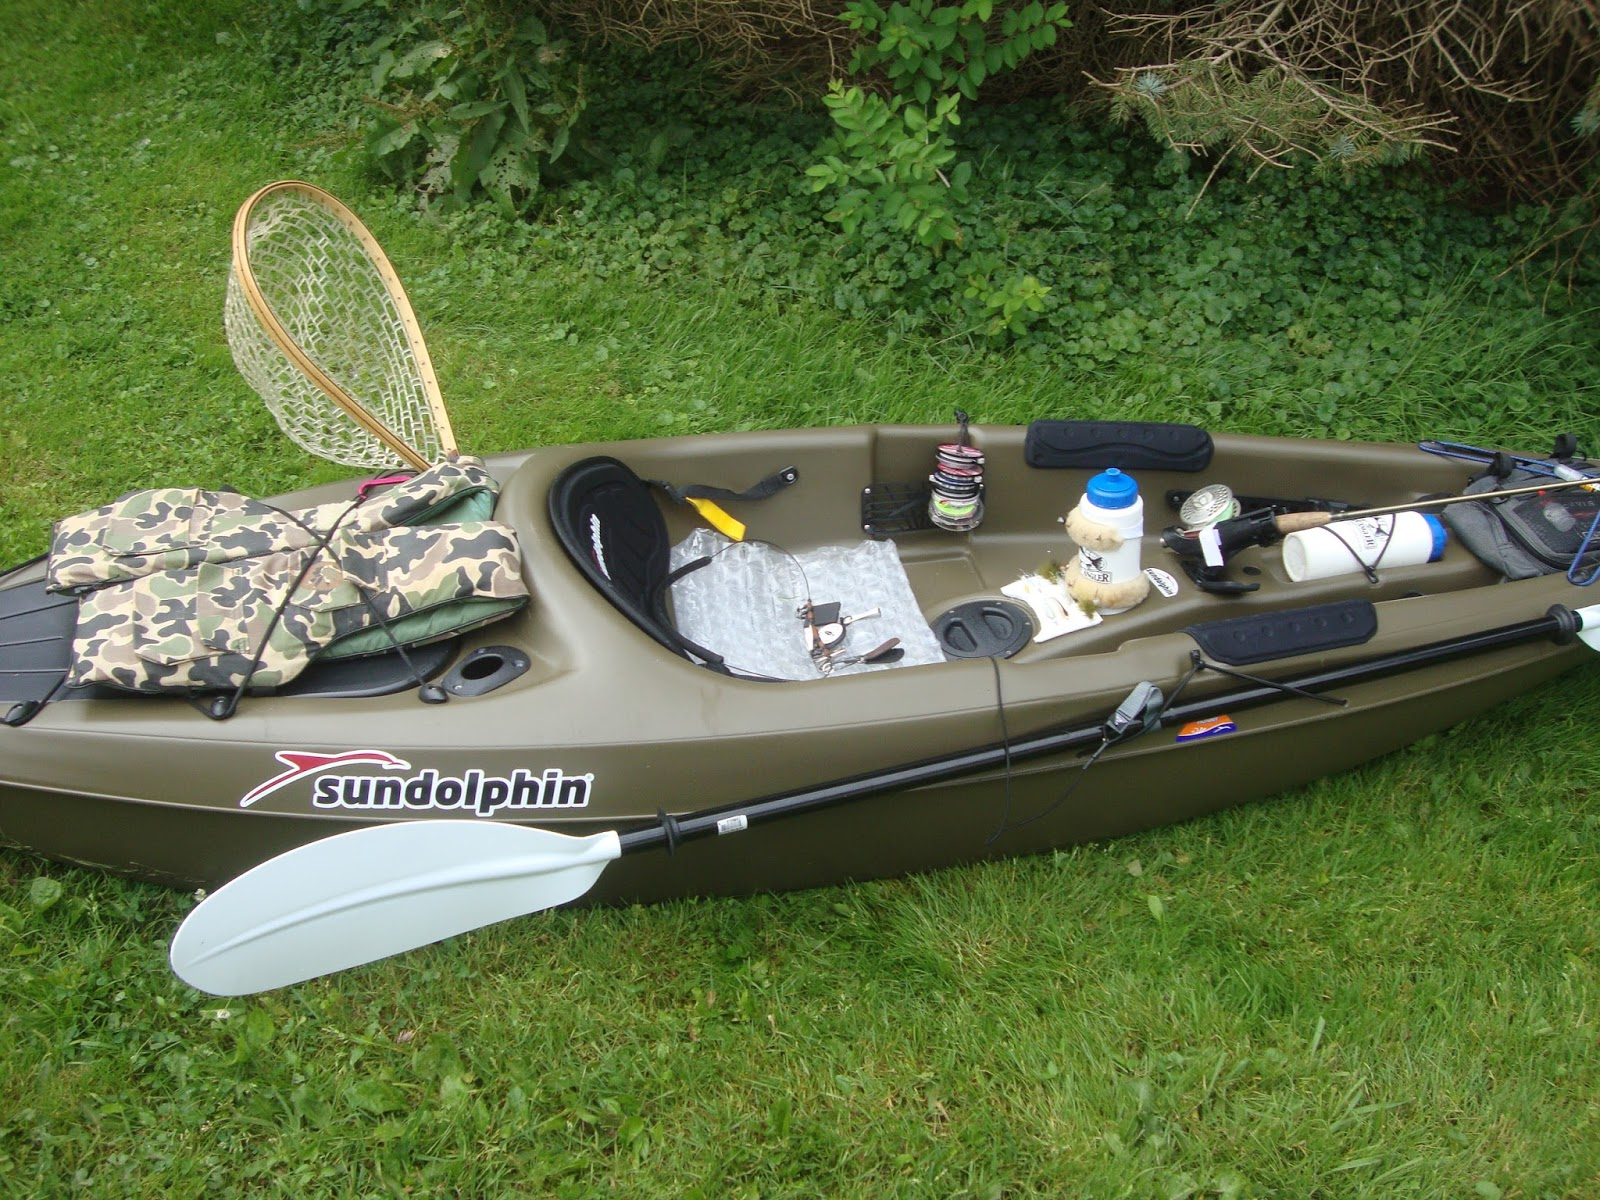 Streamside tales sun dolphin journey 10 ss kayak review for Journey fishing kayak